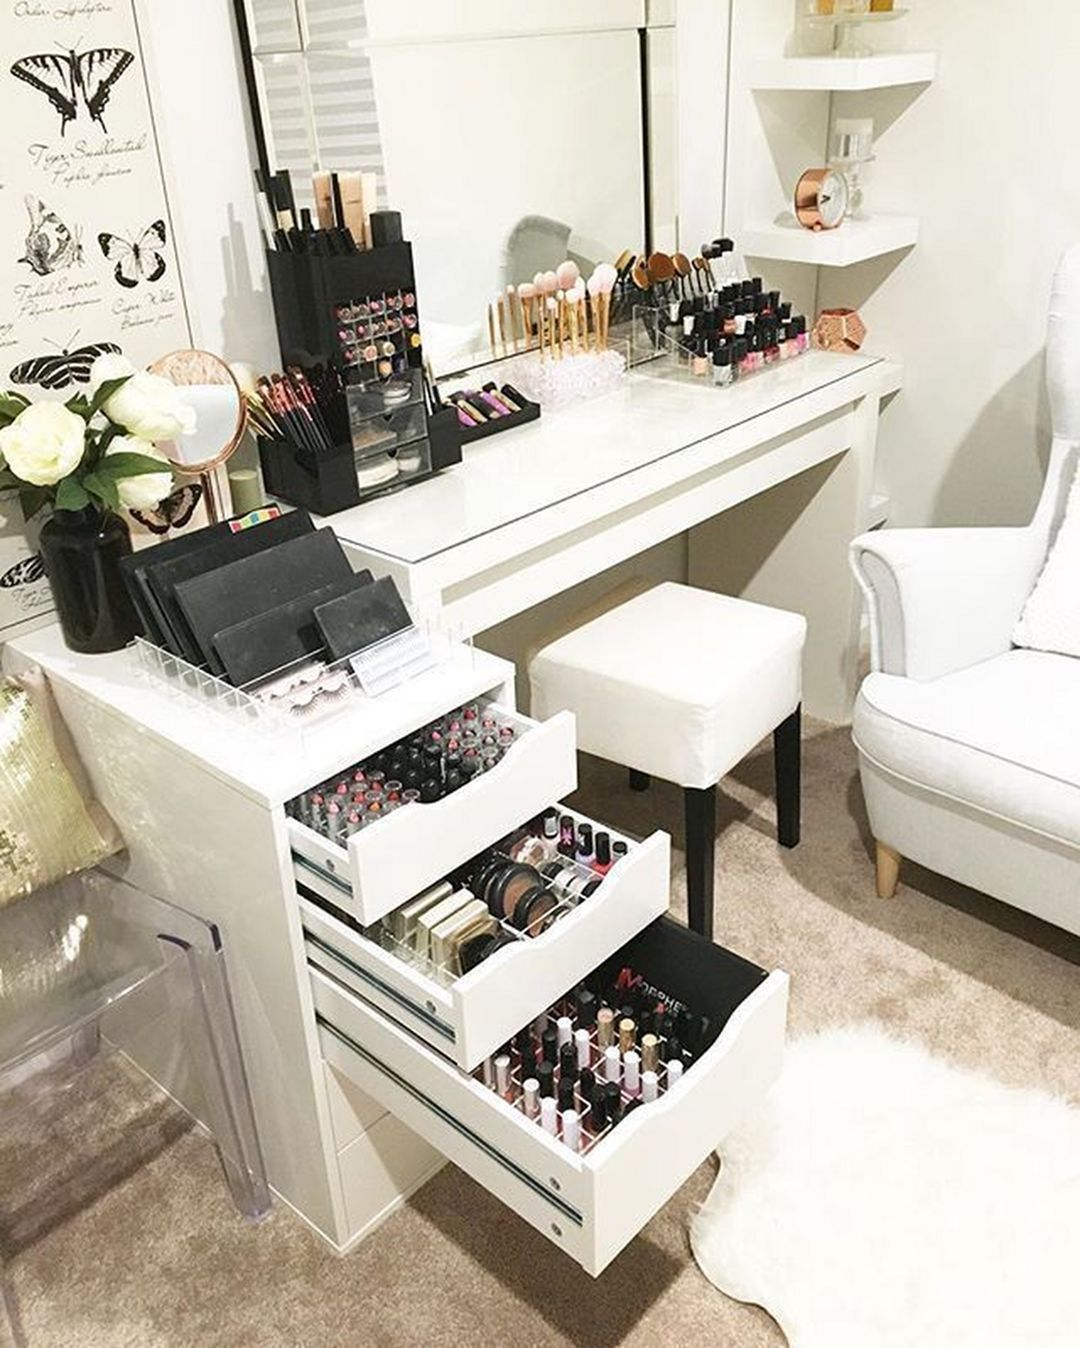 15 Best And Beautiful Organizing Makeup Equipment Design Ideas in Your Bedroom images